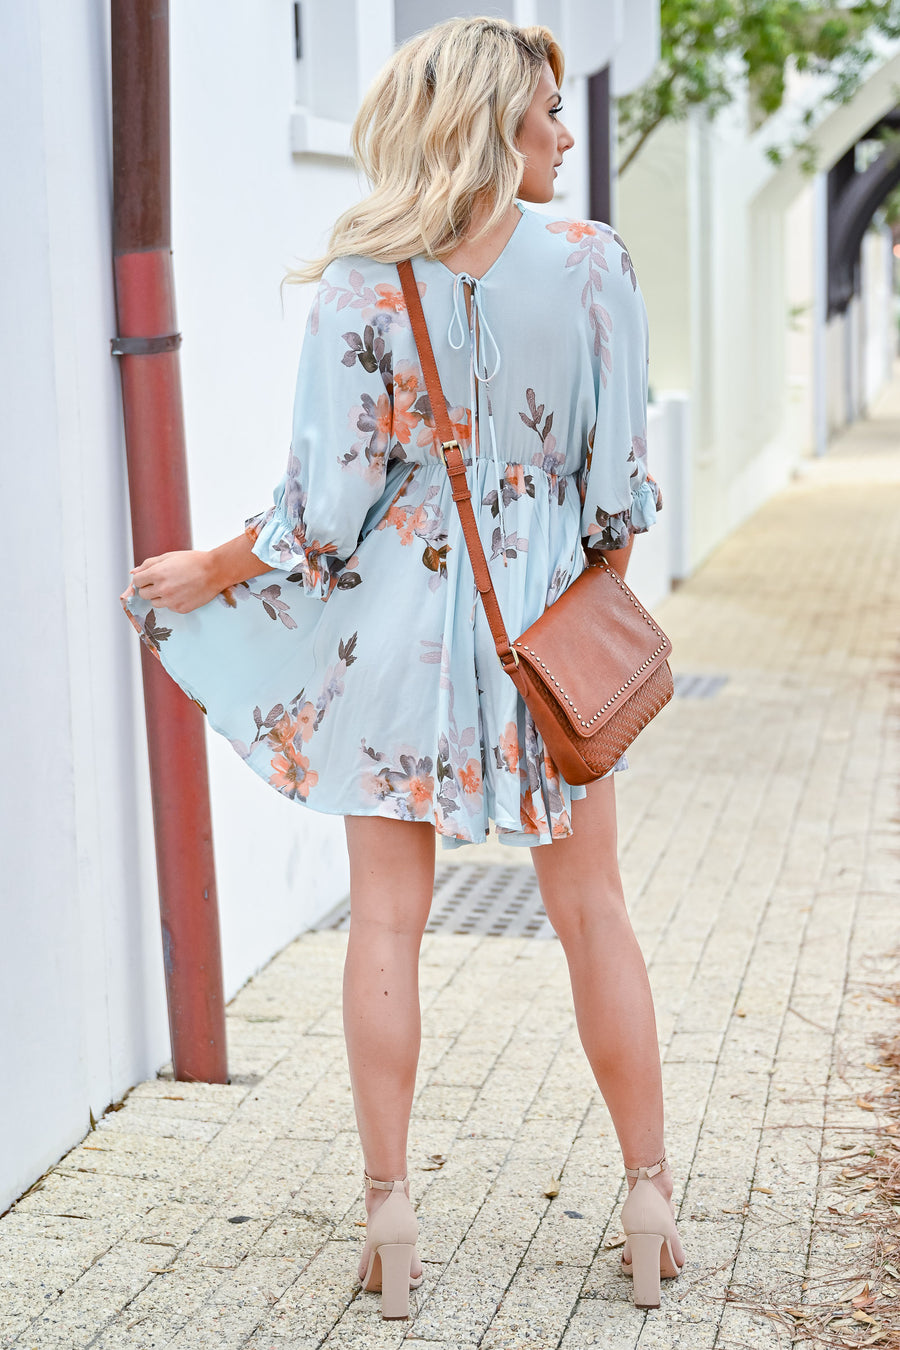 Summer Rays Floral Dress - Mint womens trendy floral print ruffle detail dress closet candy front